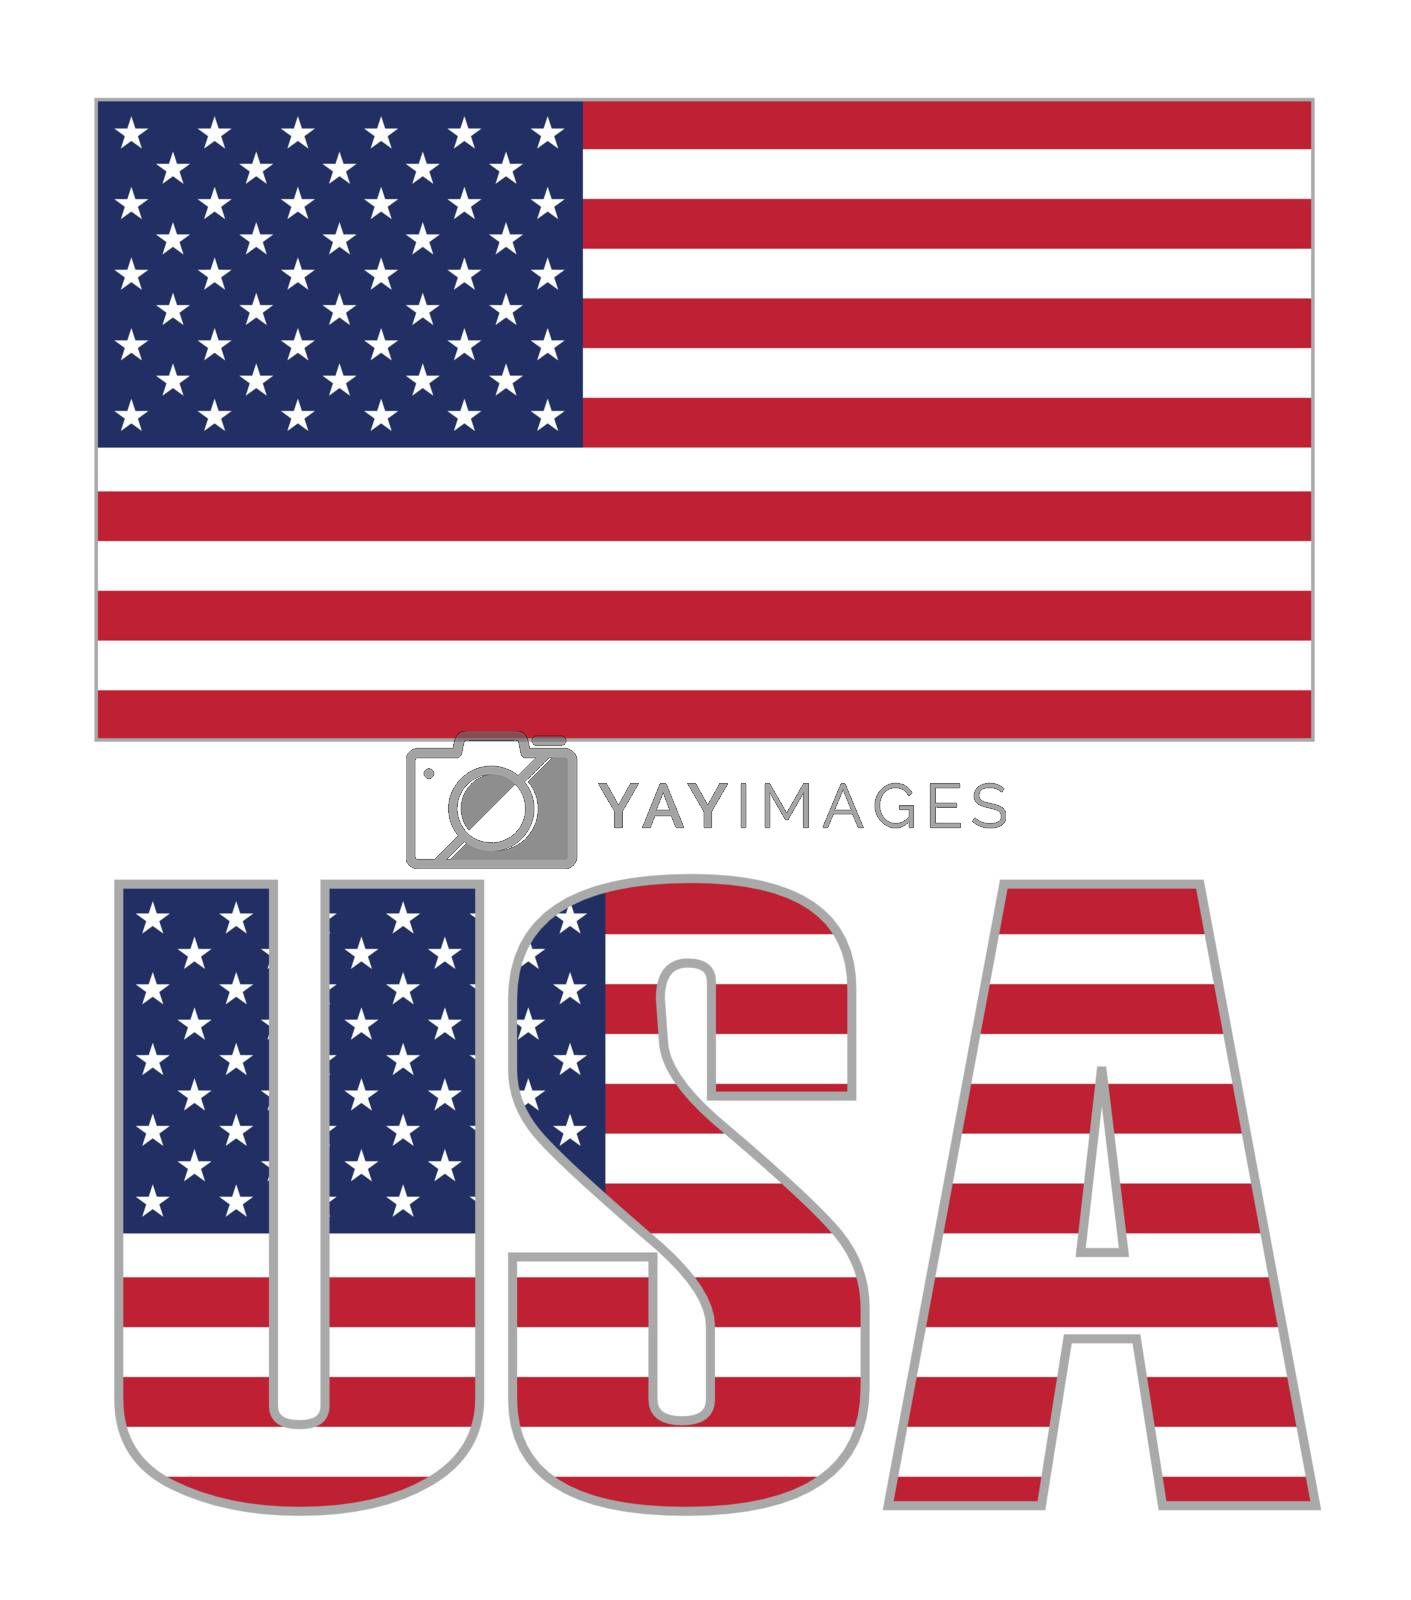 Royalty free image of USA Flag by ajn